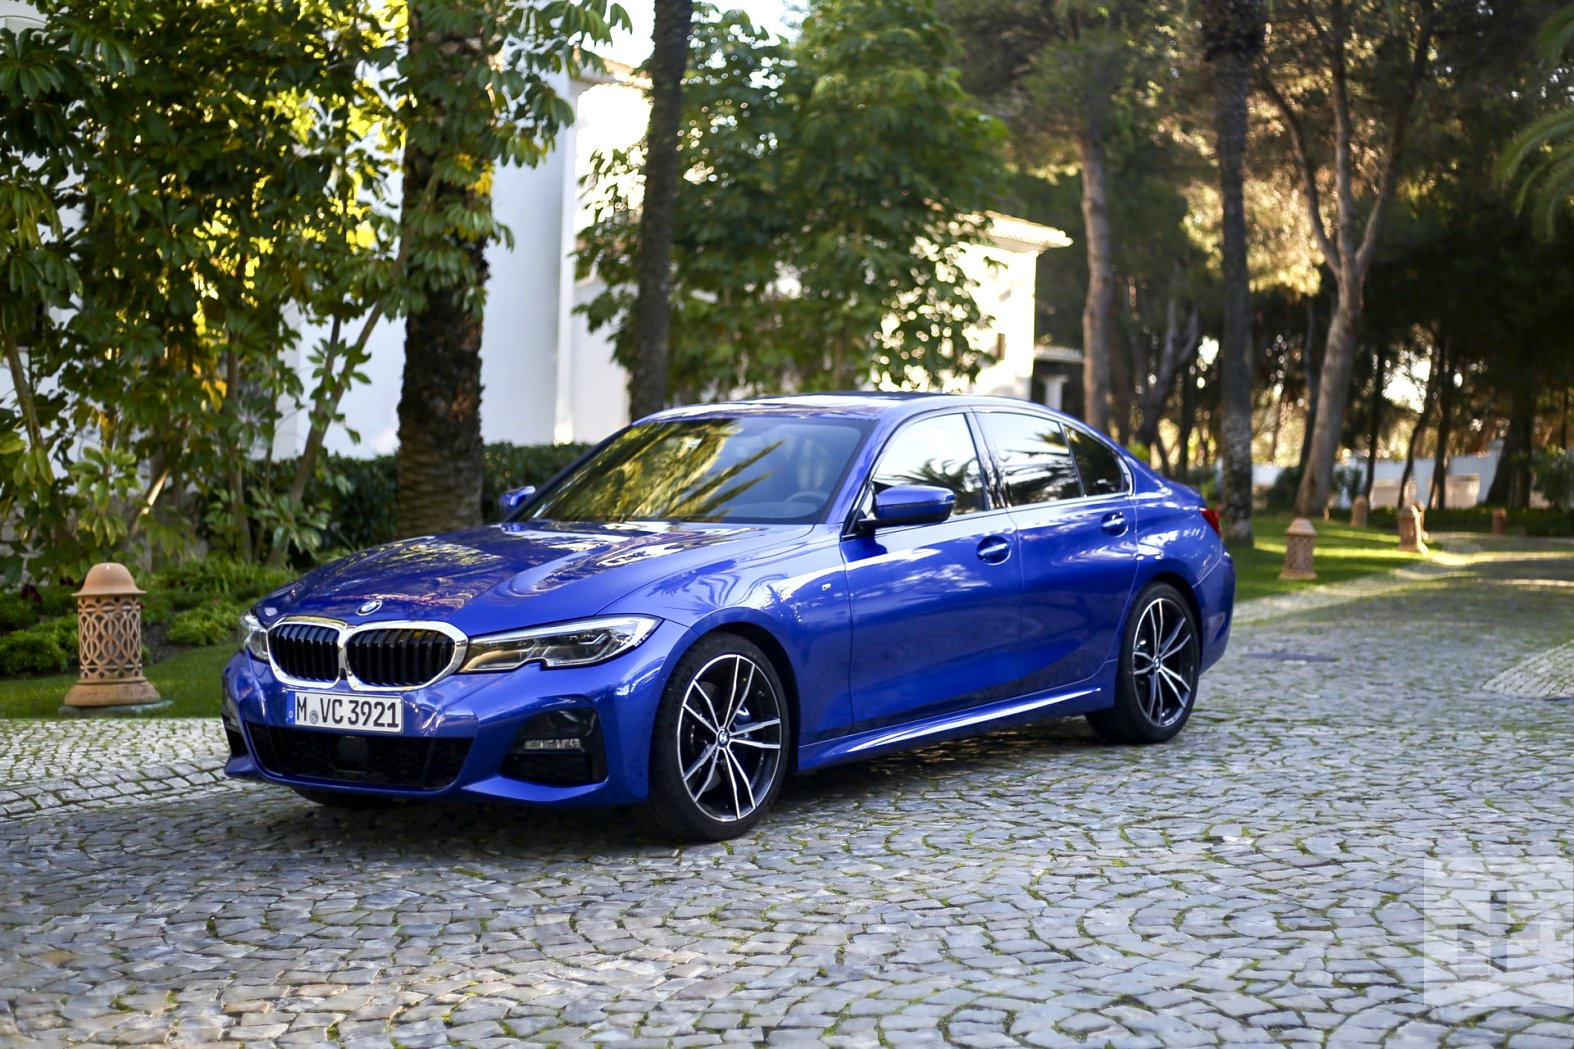 2020 BMW f30 Pricing